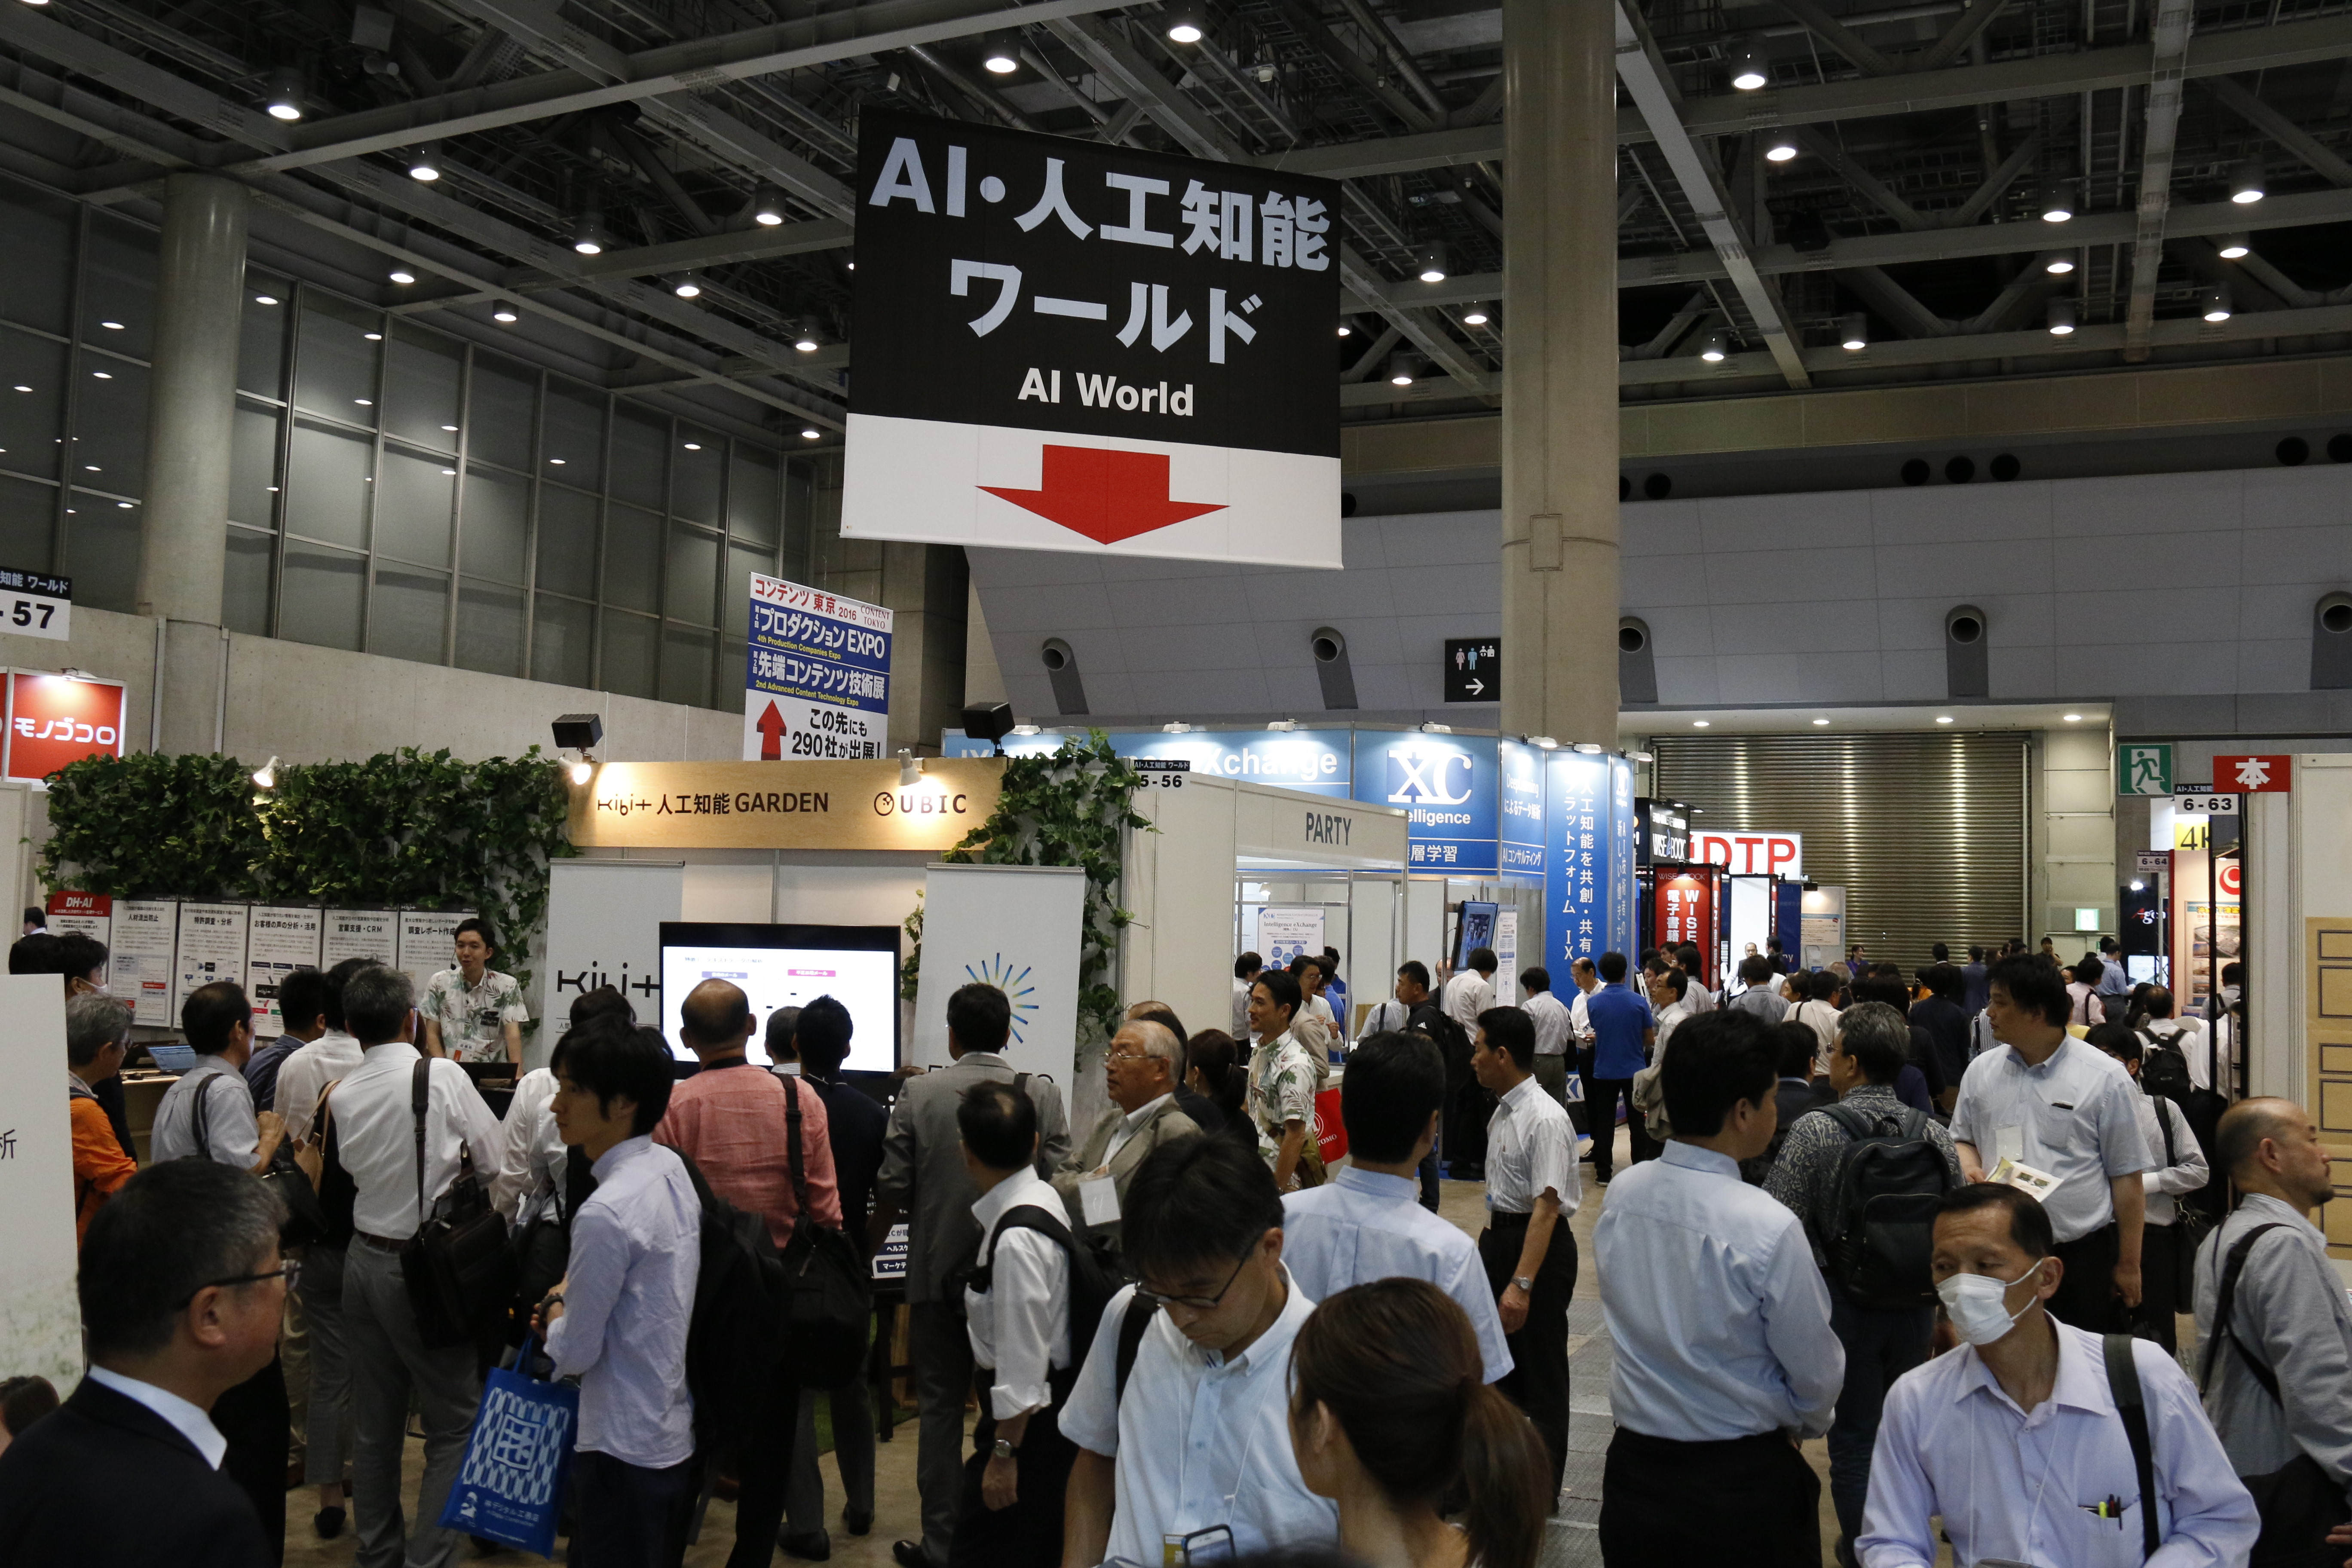 Japan's first trade show, AI EXPO -Artificial Intelligence Exhibition & Conference will be launched from June 28 to 30 at Tokyo Big Sight. (Photo: Business Wire)